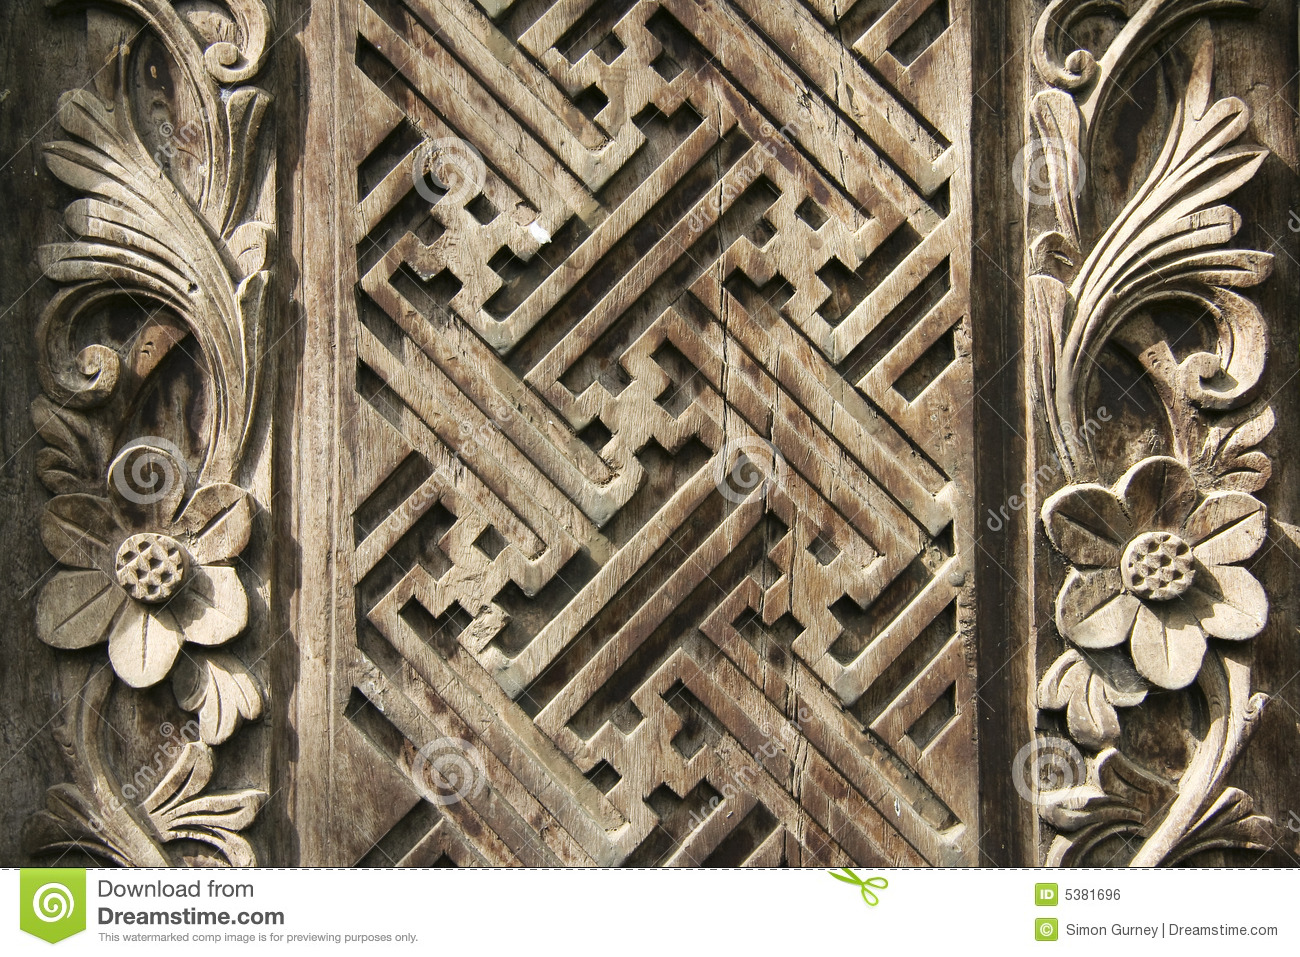 Balinese Wood Carving Design Background Royalty Free Stock